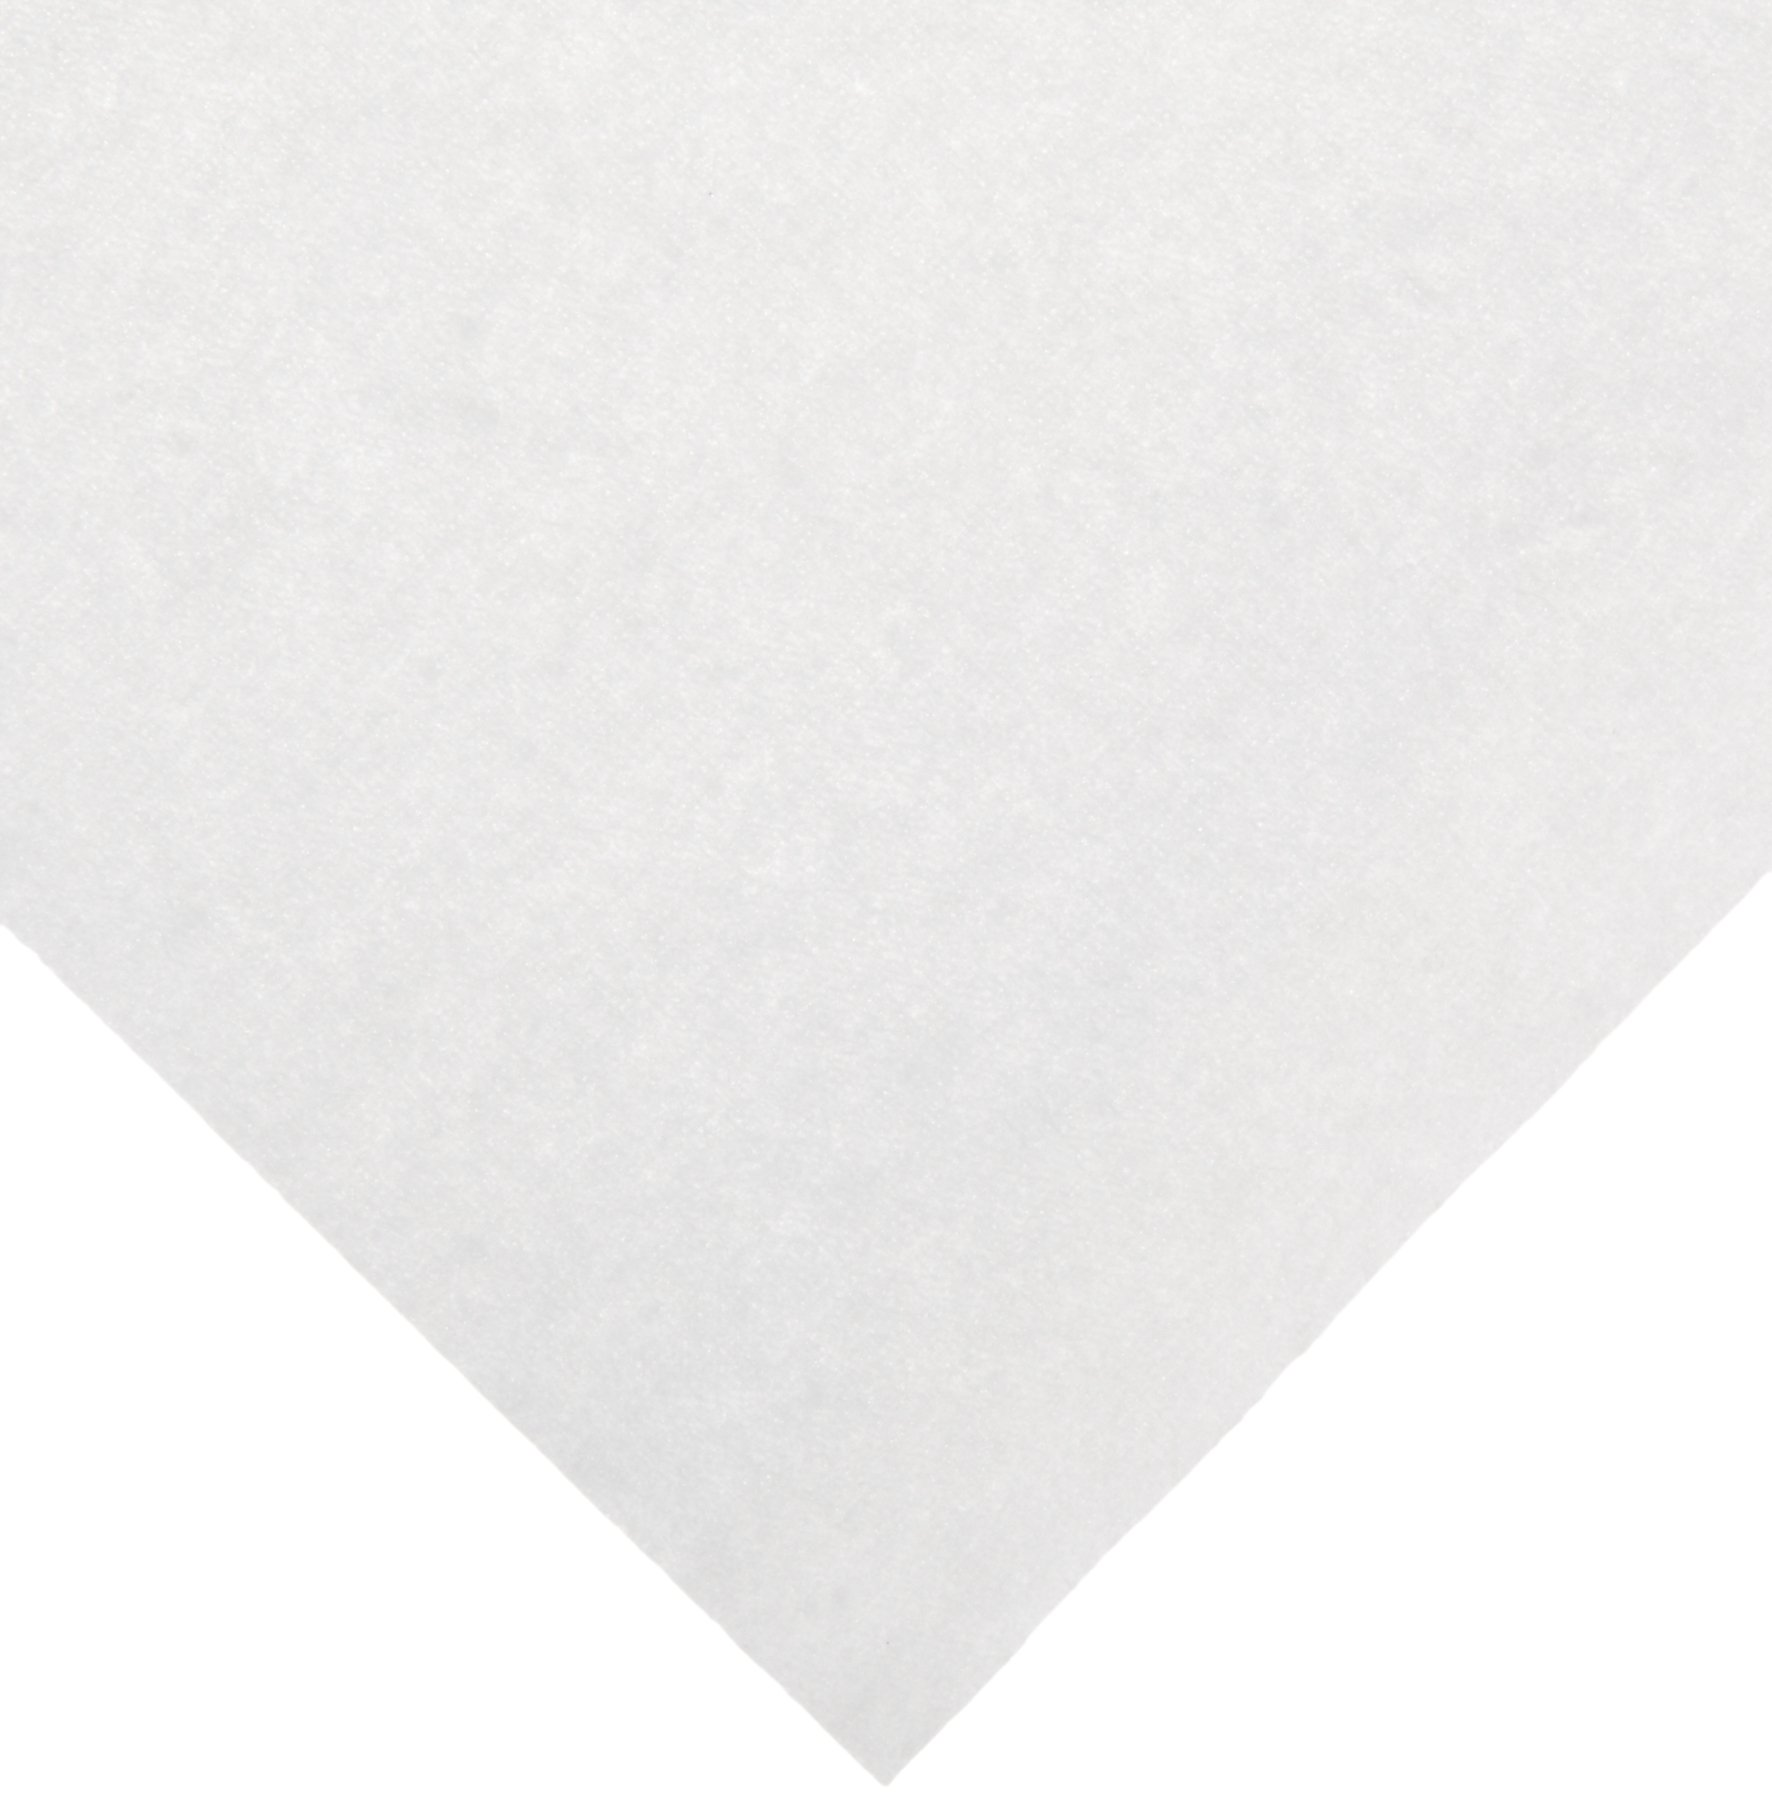 ThermoSafe ZORB66 Absorbent Sheet, Holds 360ml Water and 90ml Blood, 6'' Length x 6'' Width (Case of 500)